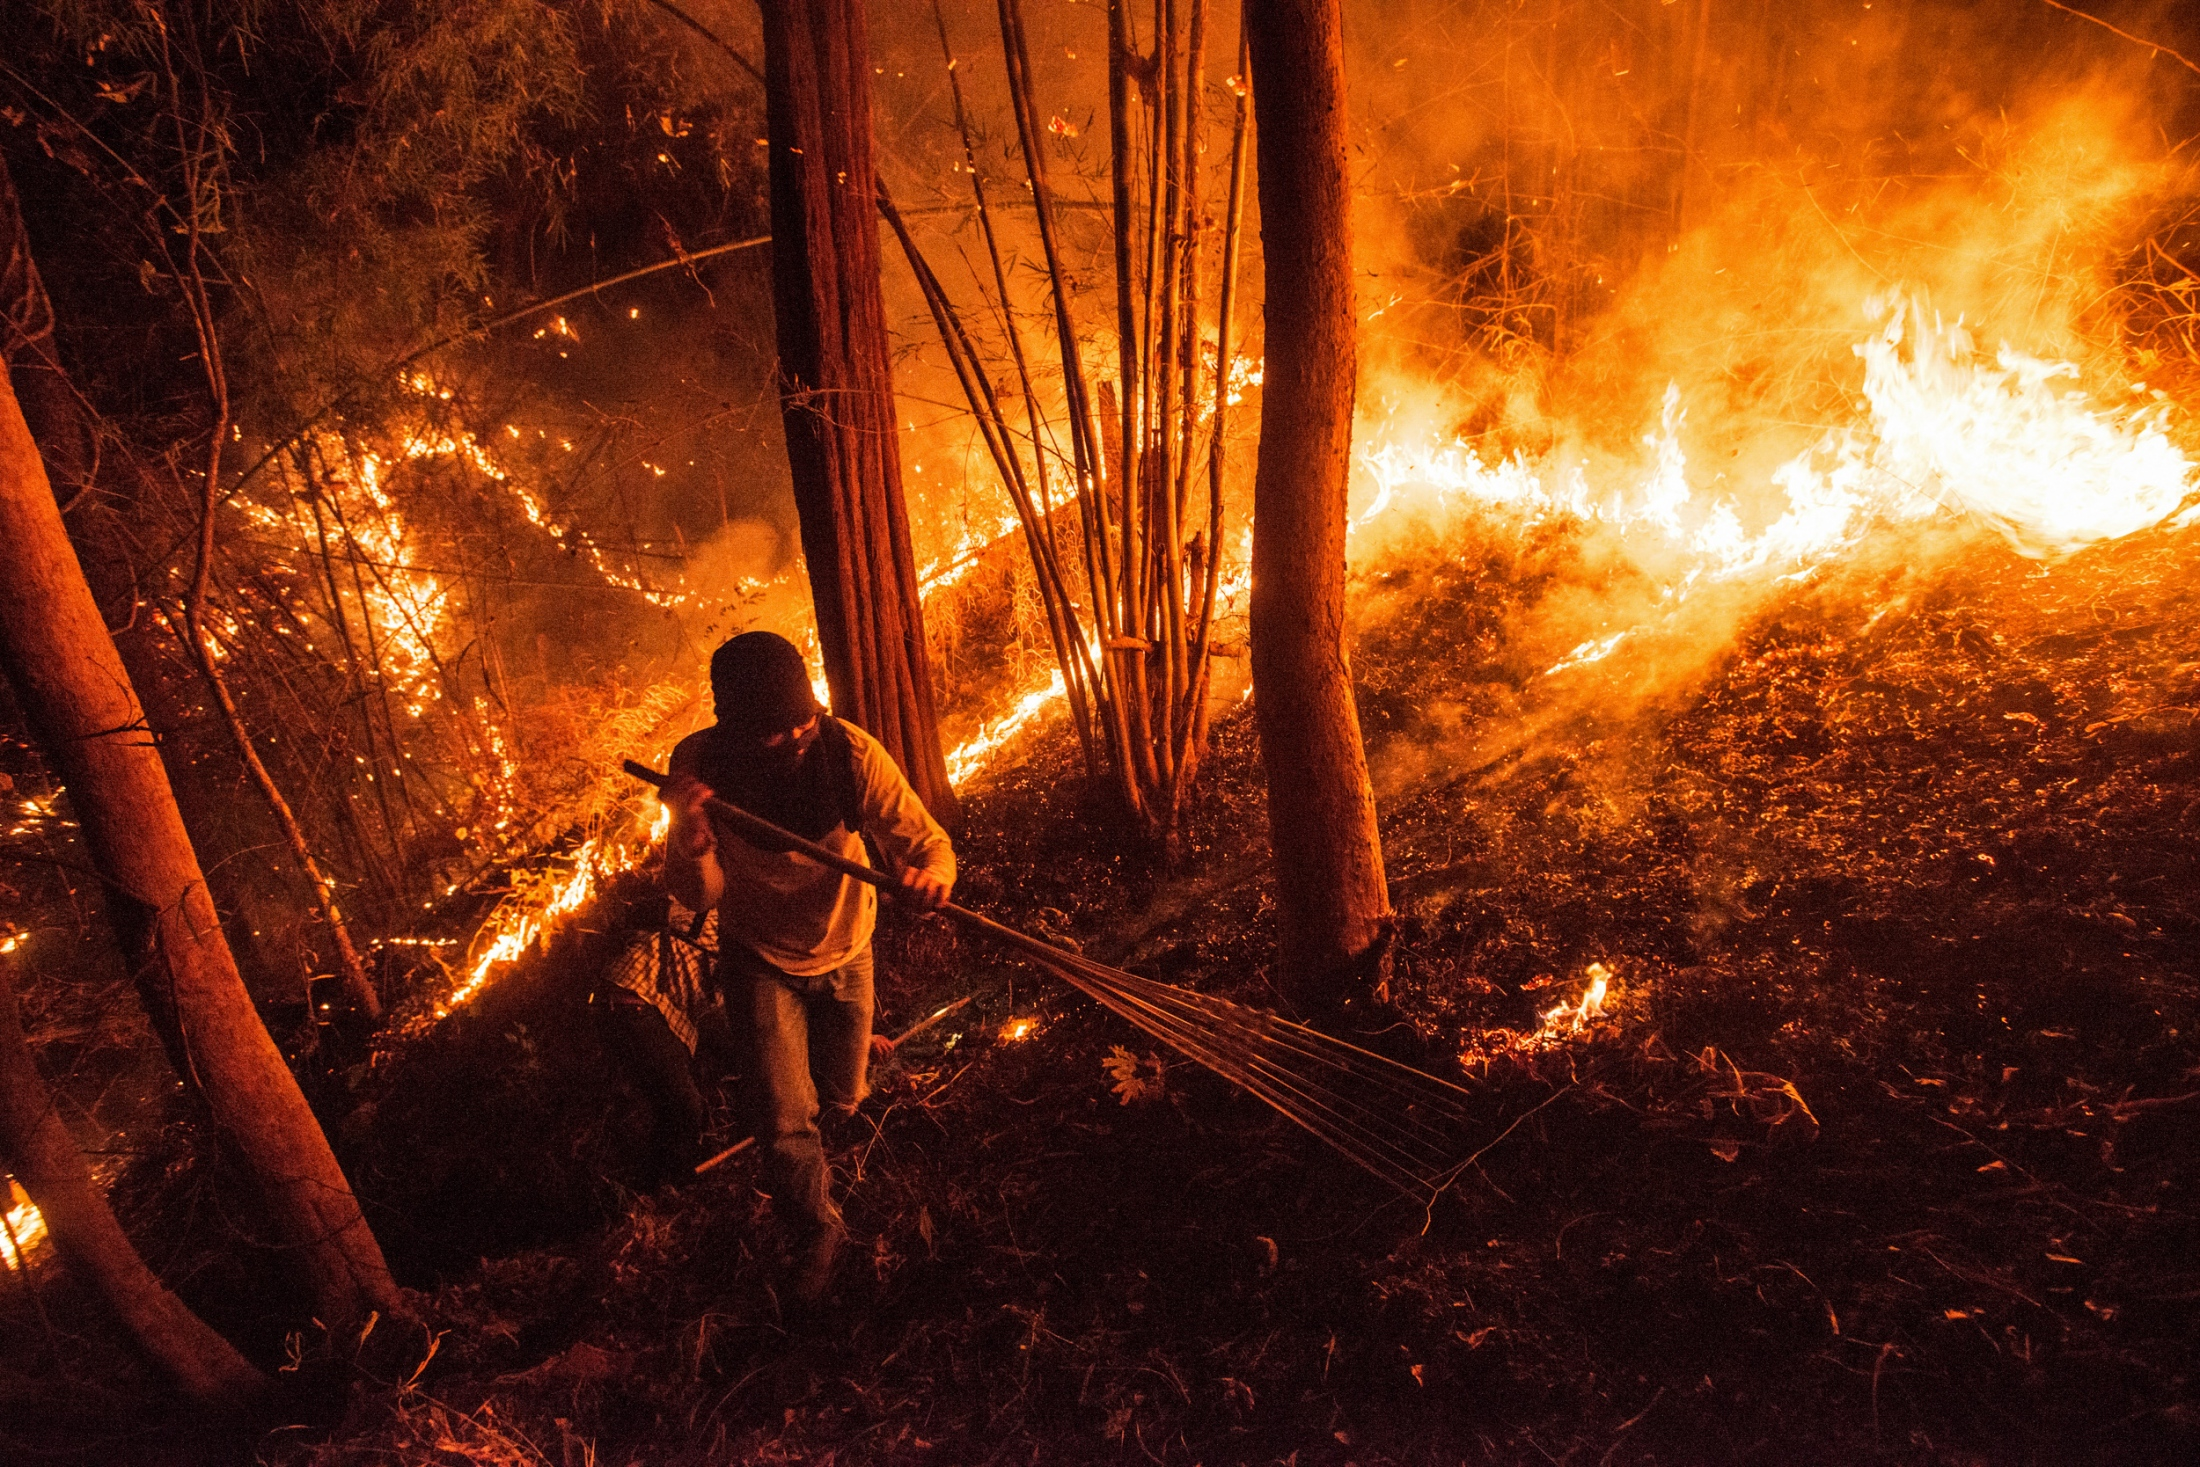 A firefighter hikes through a forest fire to control the spread of fire occurred during the night time by making a firebreak. 99% of the annual wildfires are caused by humans. March 21, 2014.